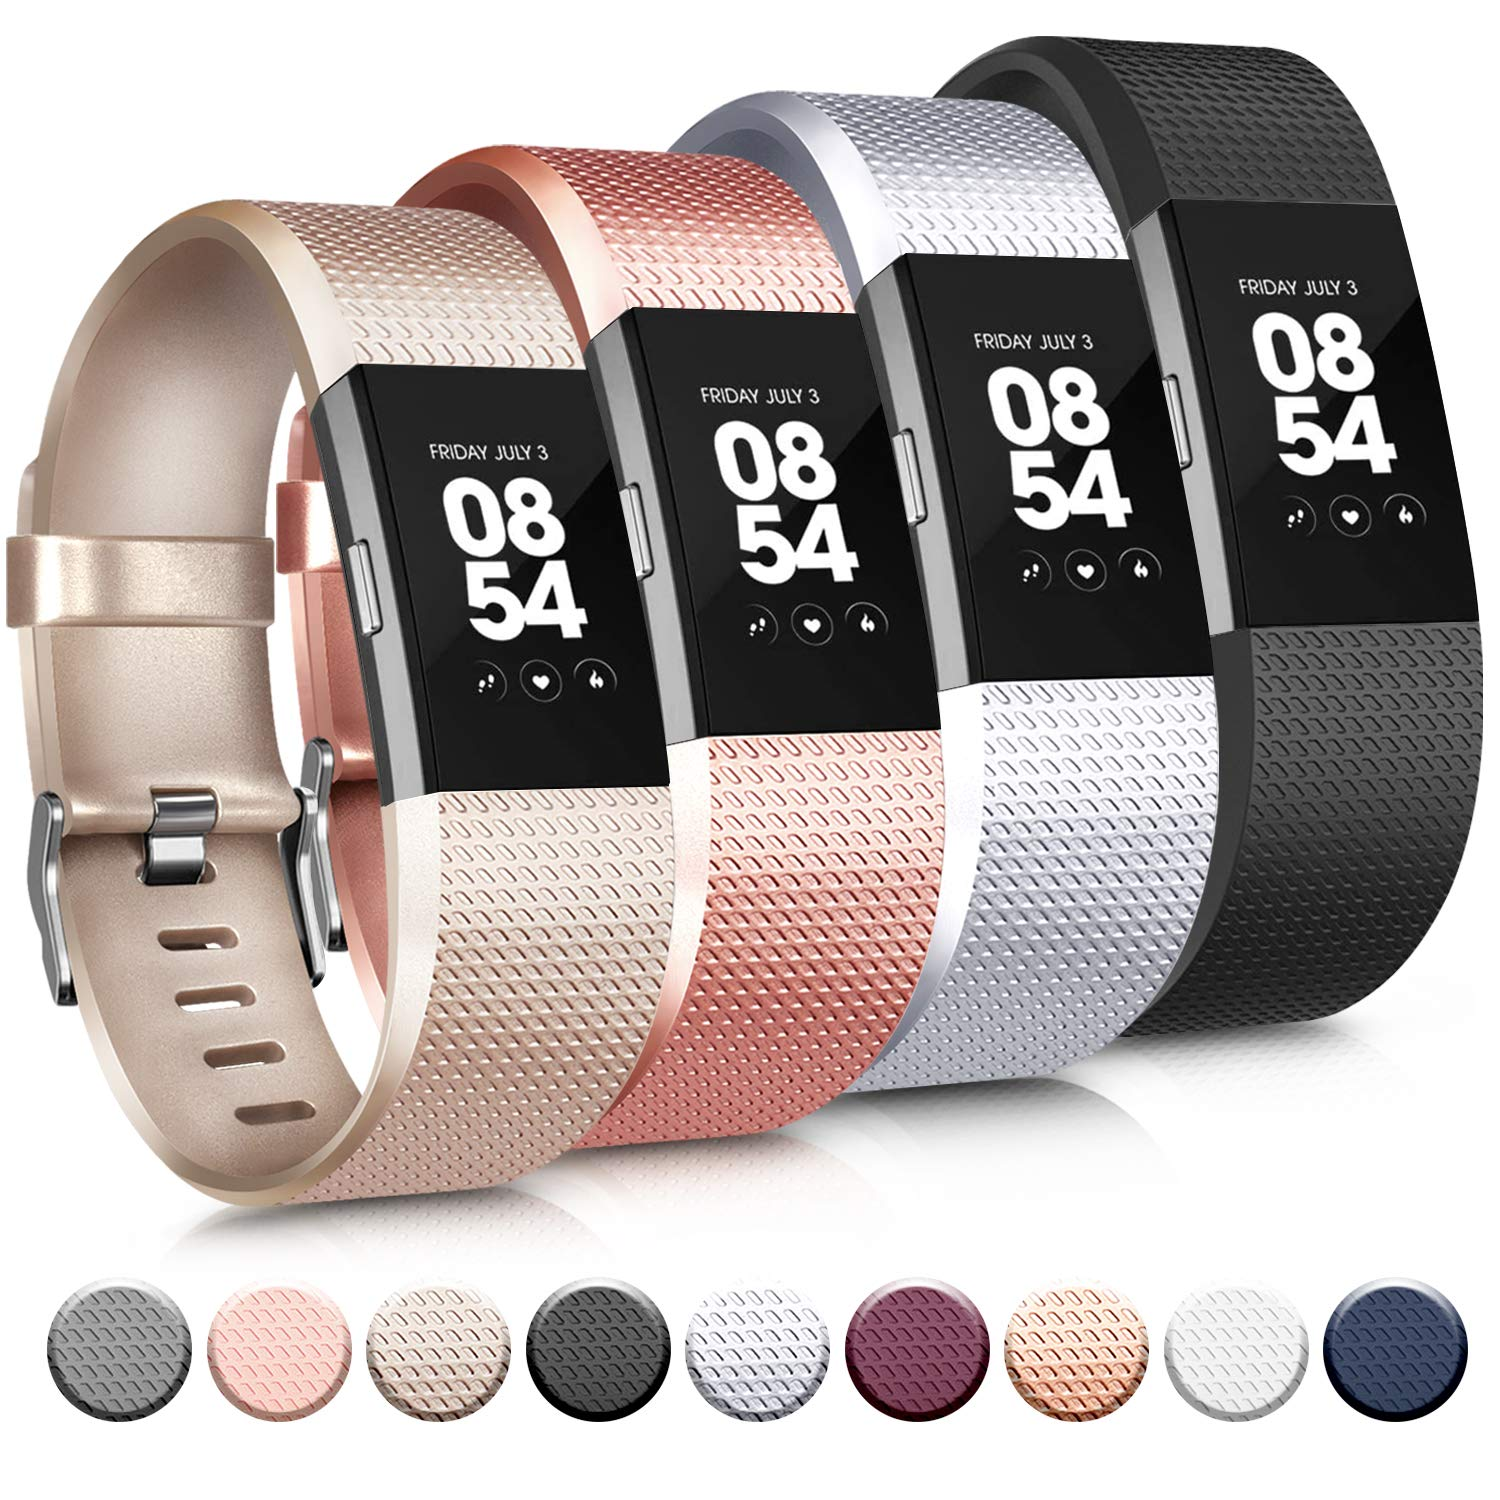 4 Mallas Small para Fitbit Charge 2 Oro / Champán / Negro